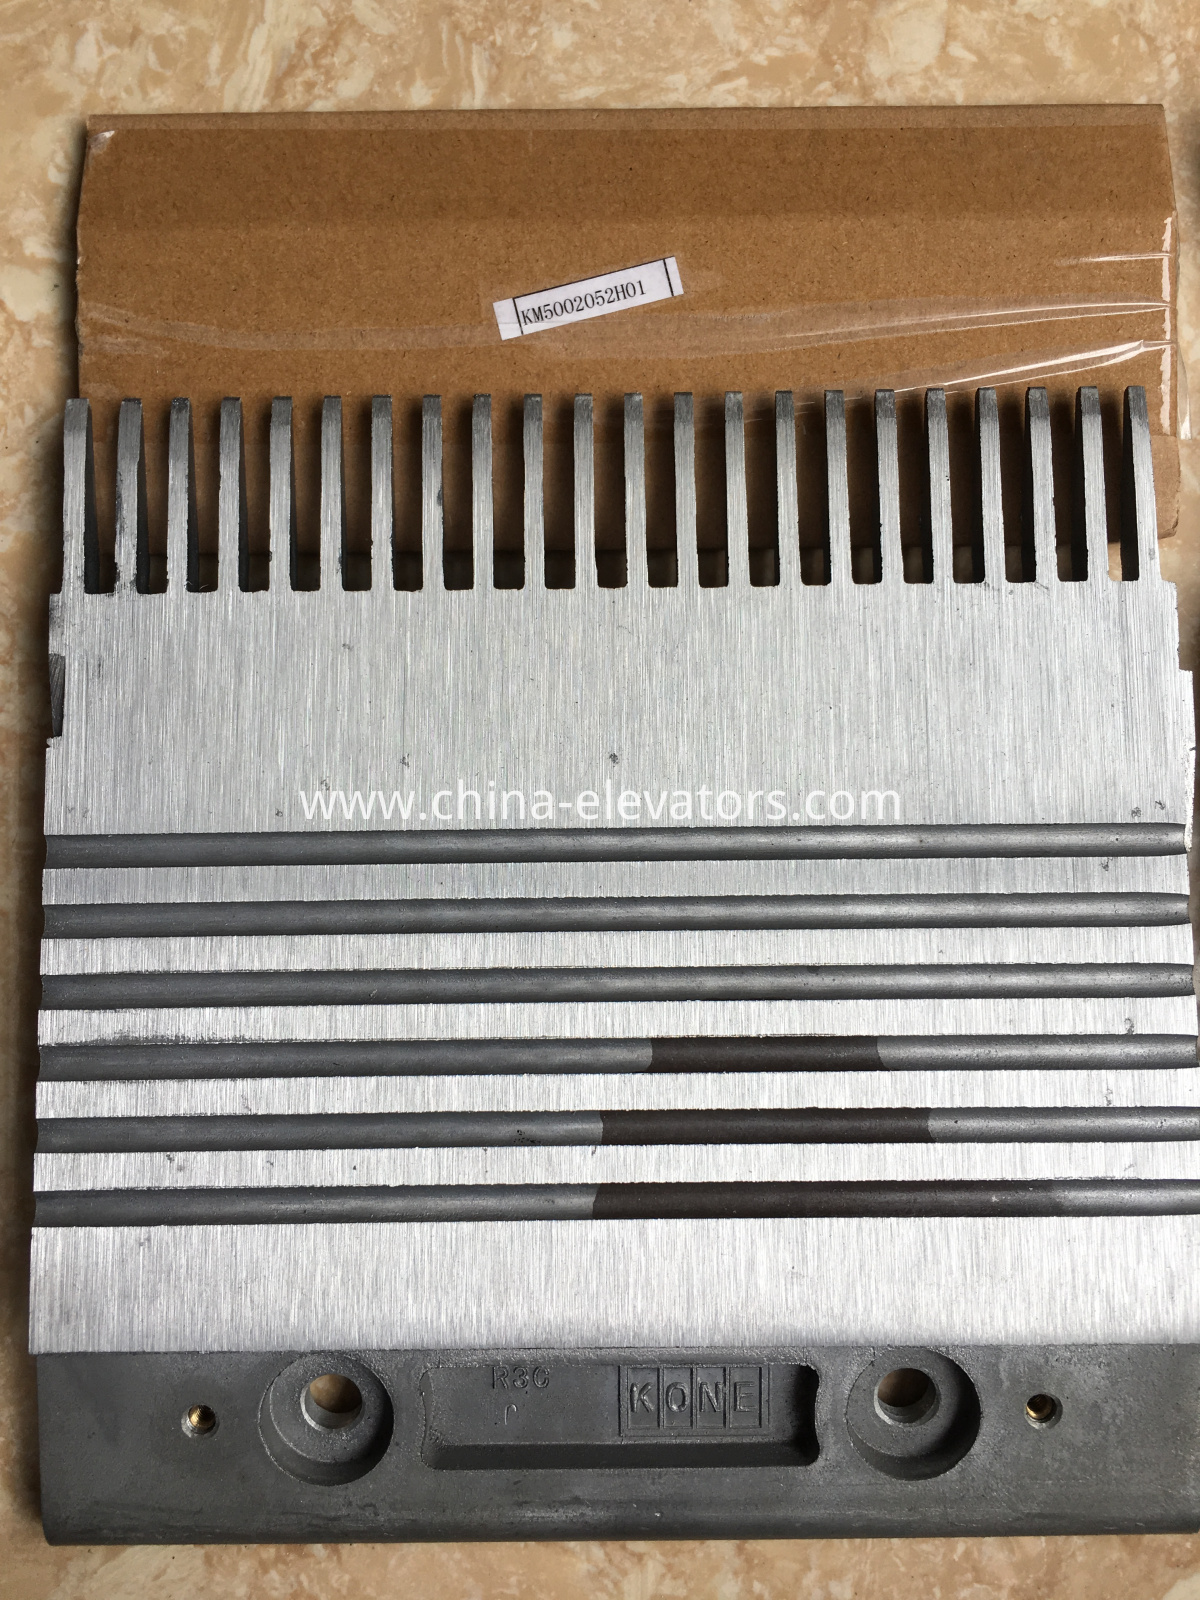 R3C Aluminium Alloy Combs for KONE Autowalks